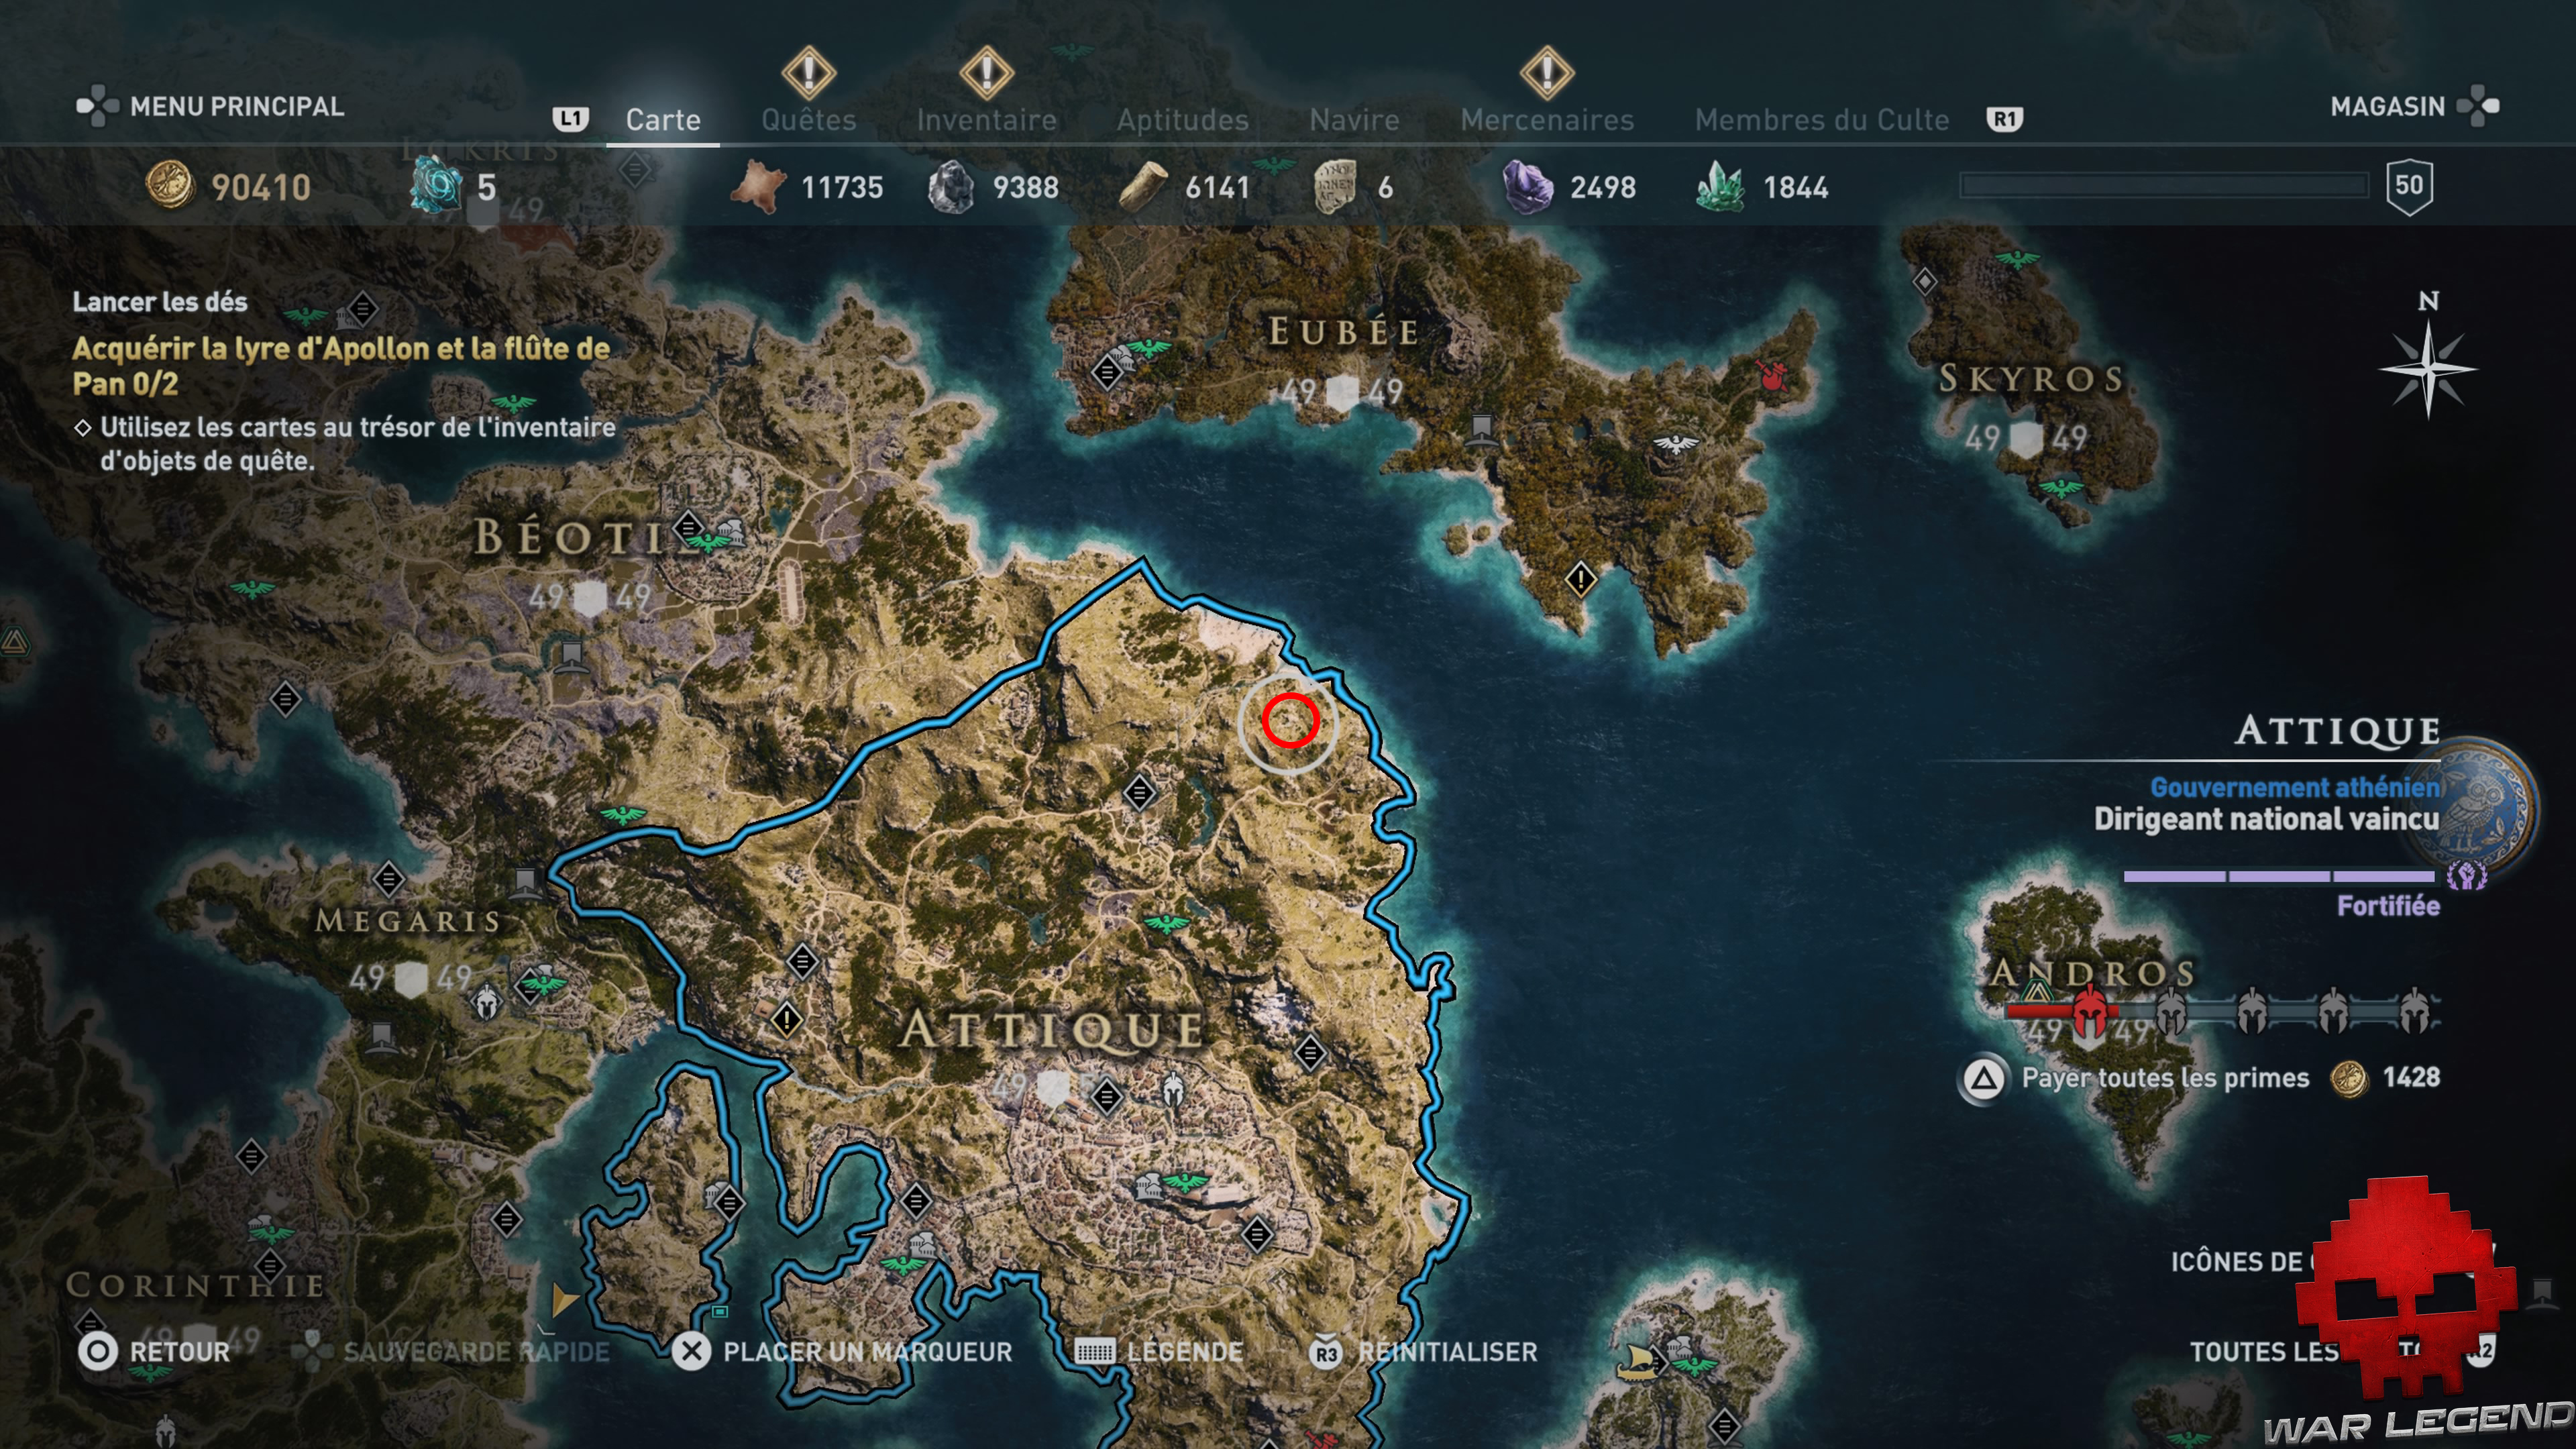 Assassin S Creed Odyssey Karte.Guide Assassin S Creed Odyssey Solution Des Quetes De Xenia